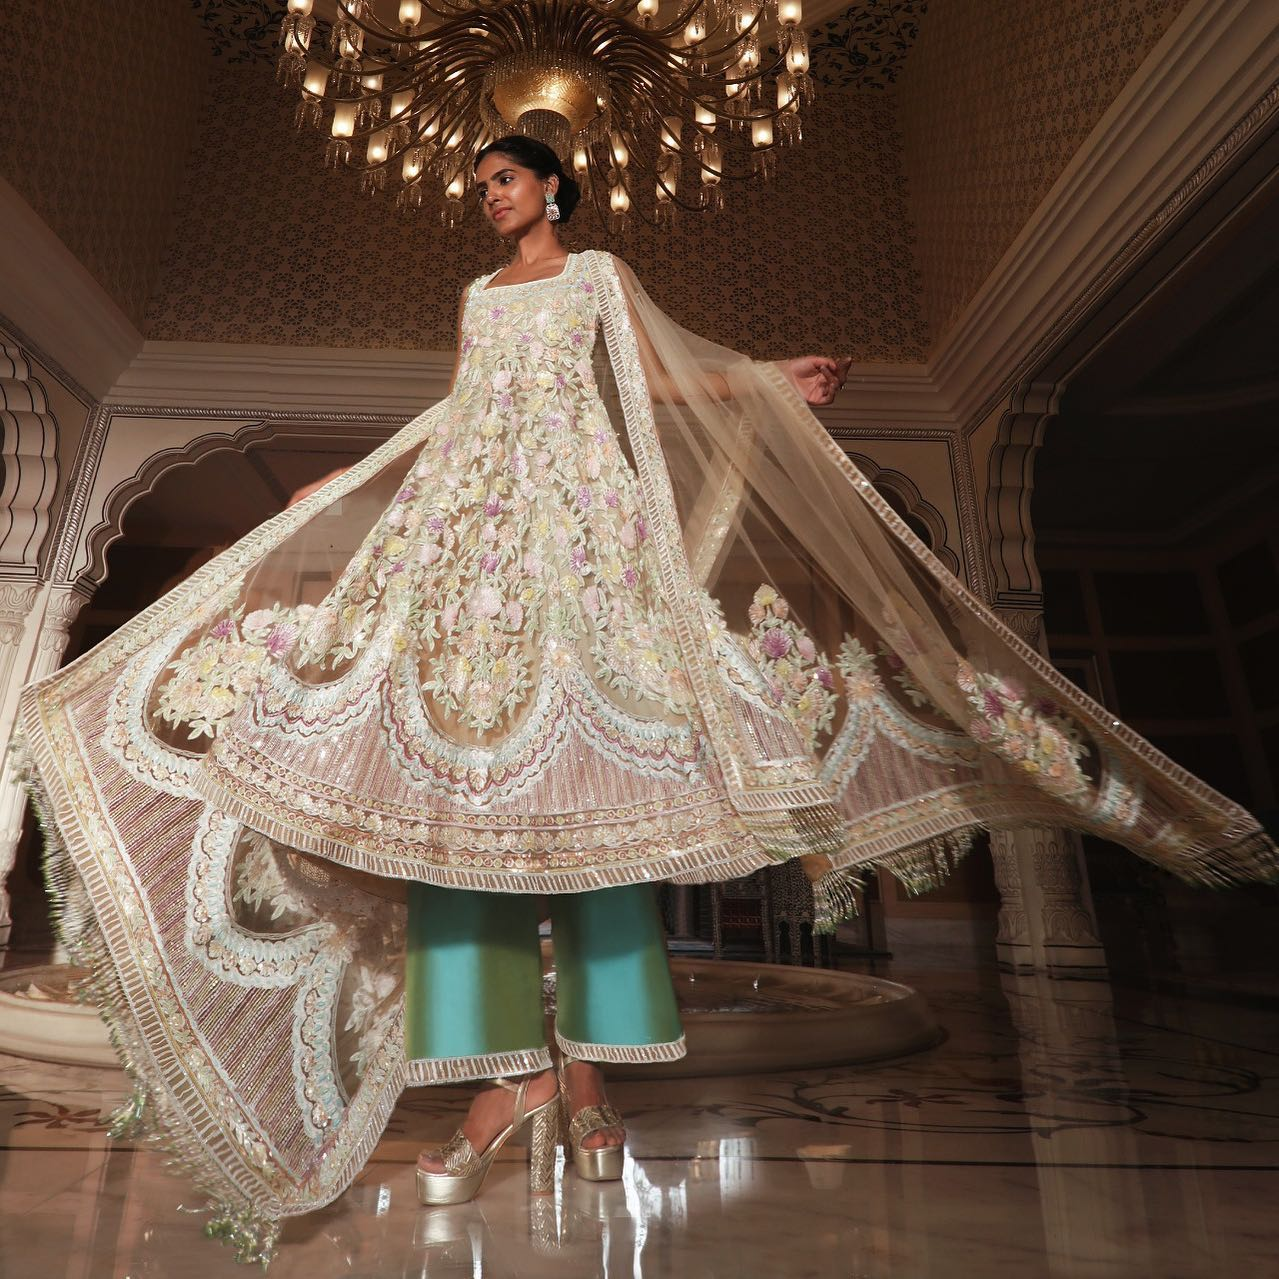 The departure of spring marks the cloudburst of delicate pastel-hued sequins and crystals sprinkling on Biscotti flared Tunic in Kashmiri embroidery accompanied by tasselled drape and aqua teal silk palazzos enticing the softness and tranquillity of a #Nooraniyat soiree.  2021-05-17